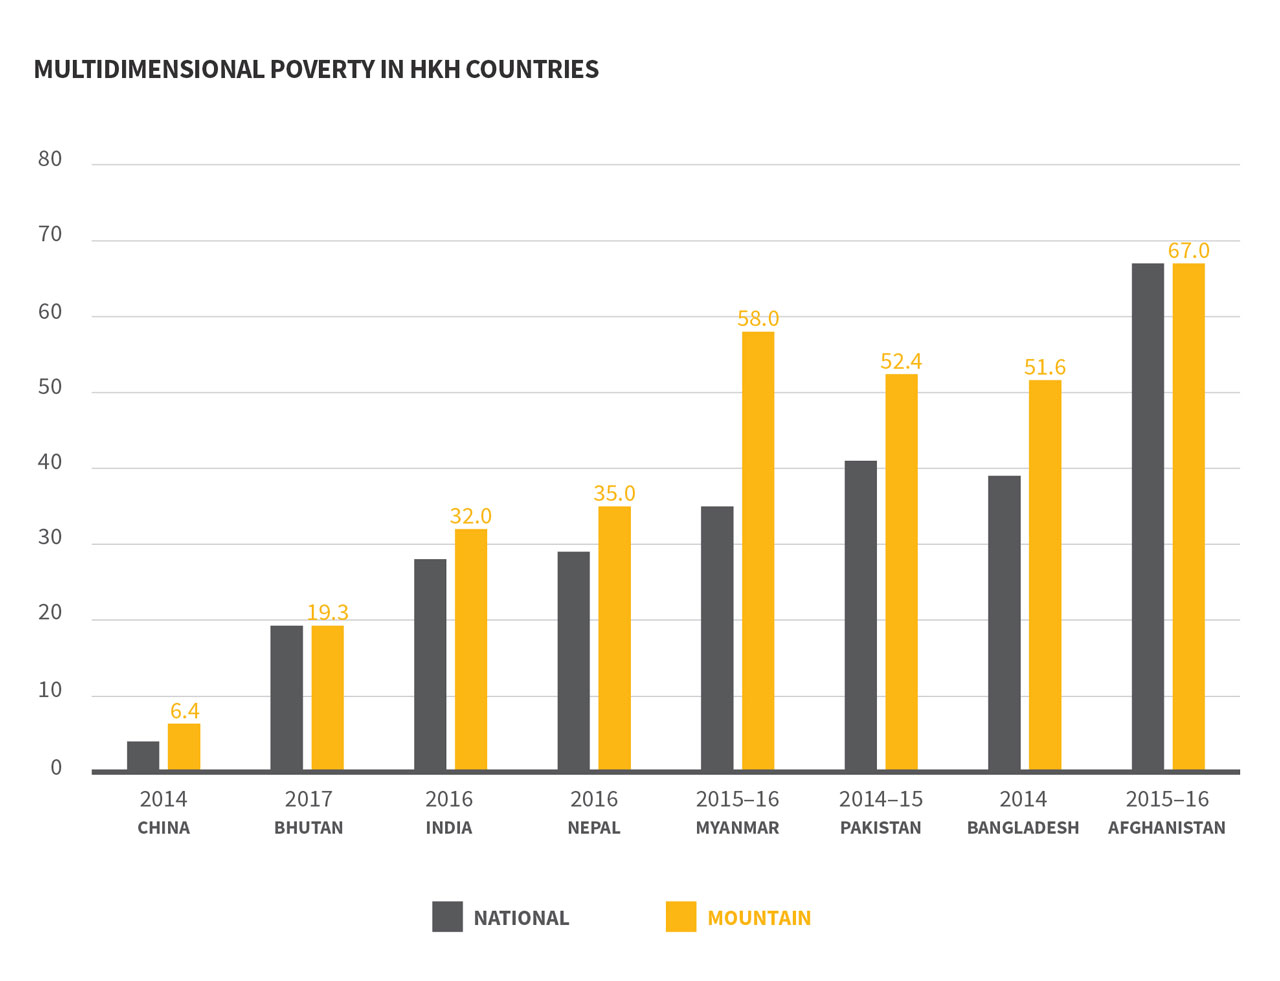 Poverty in the HKH